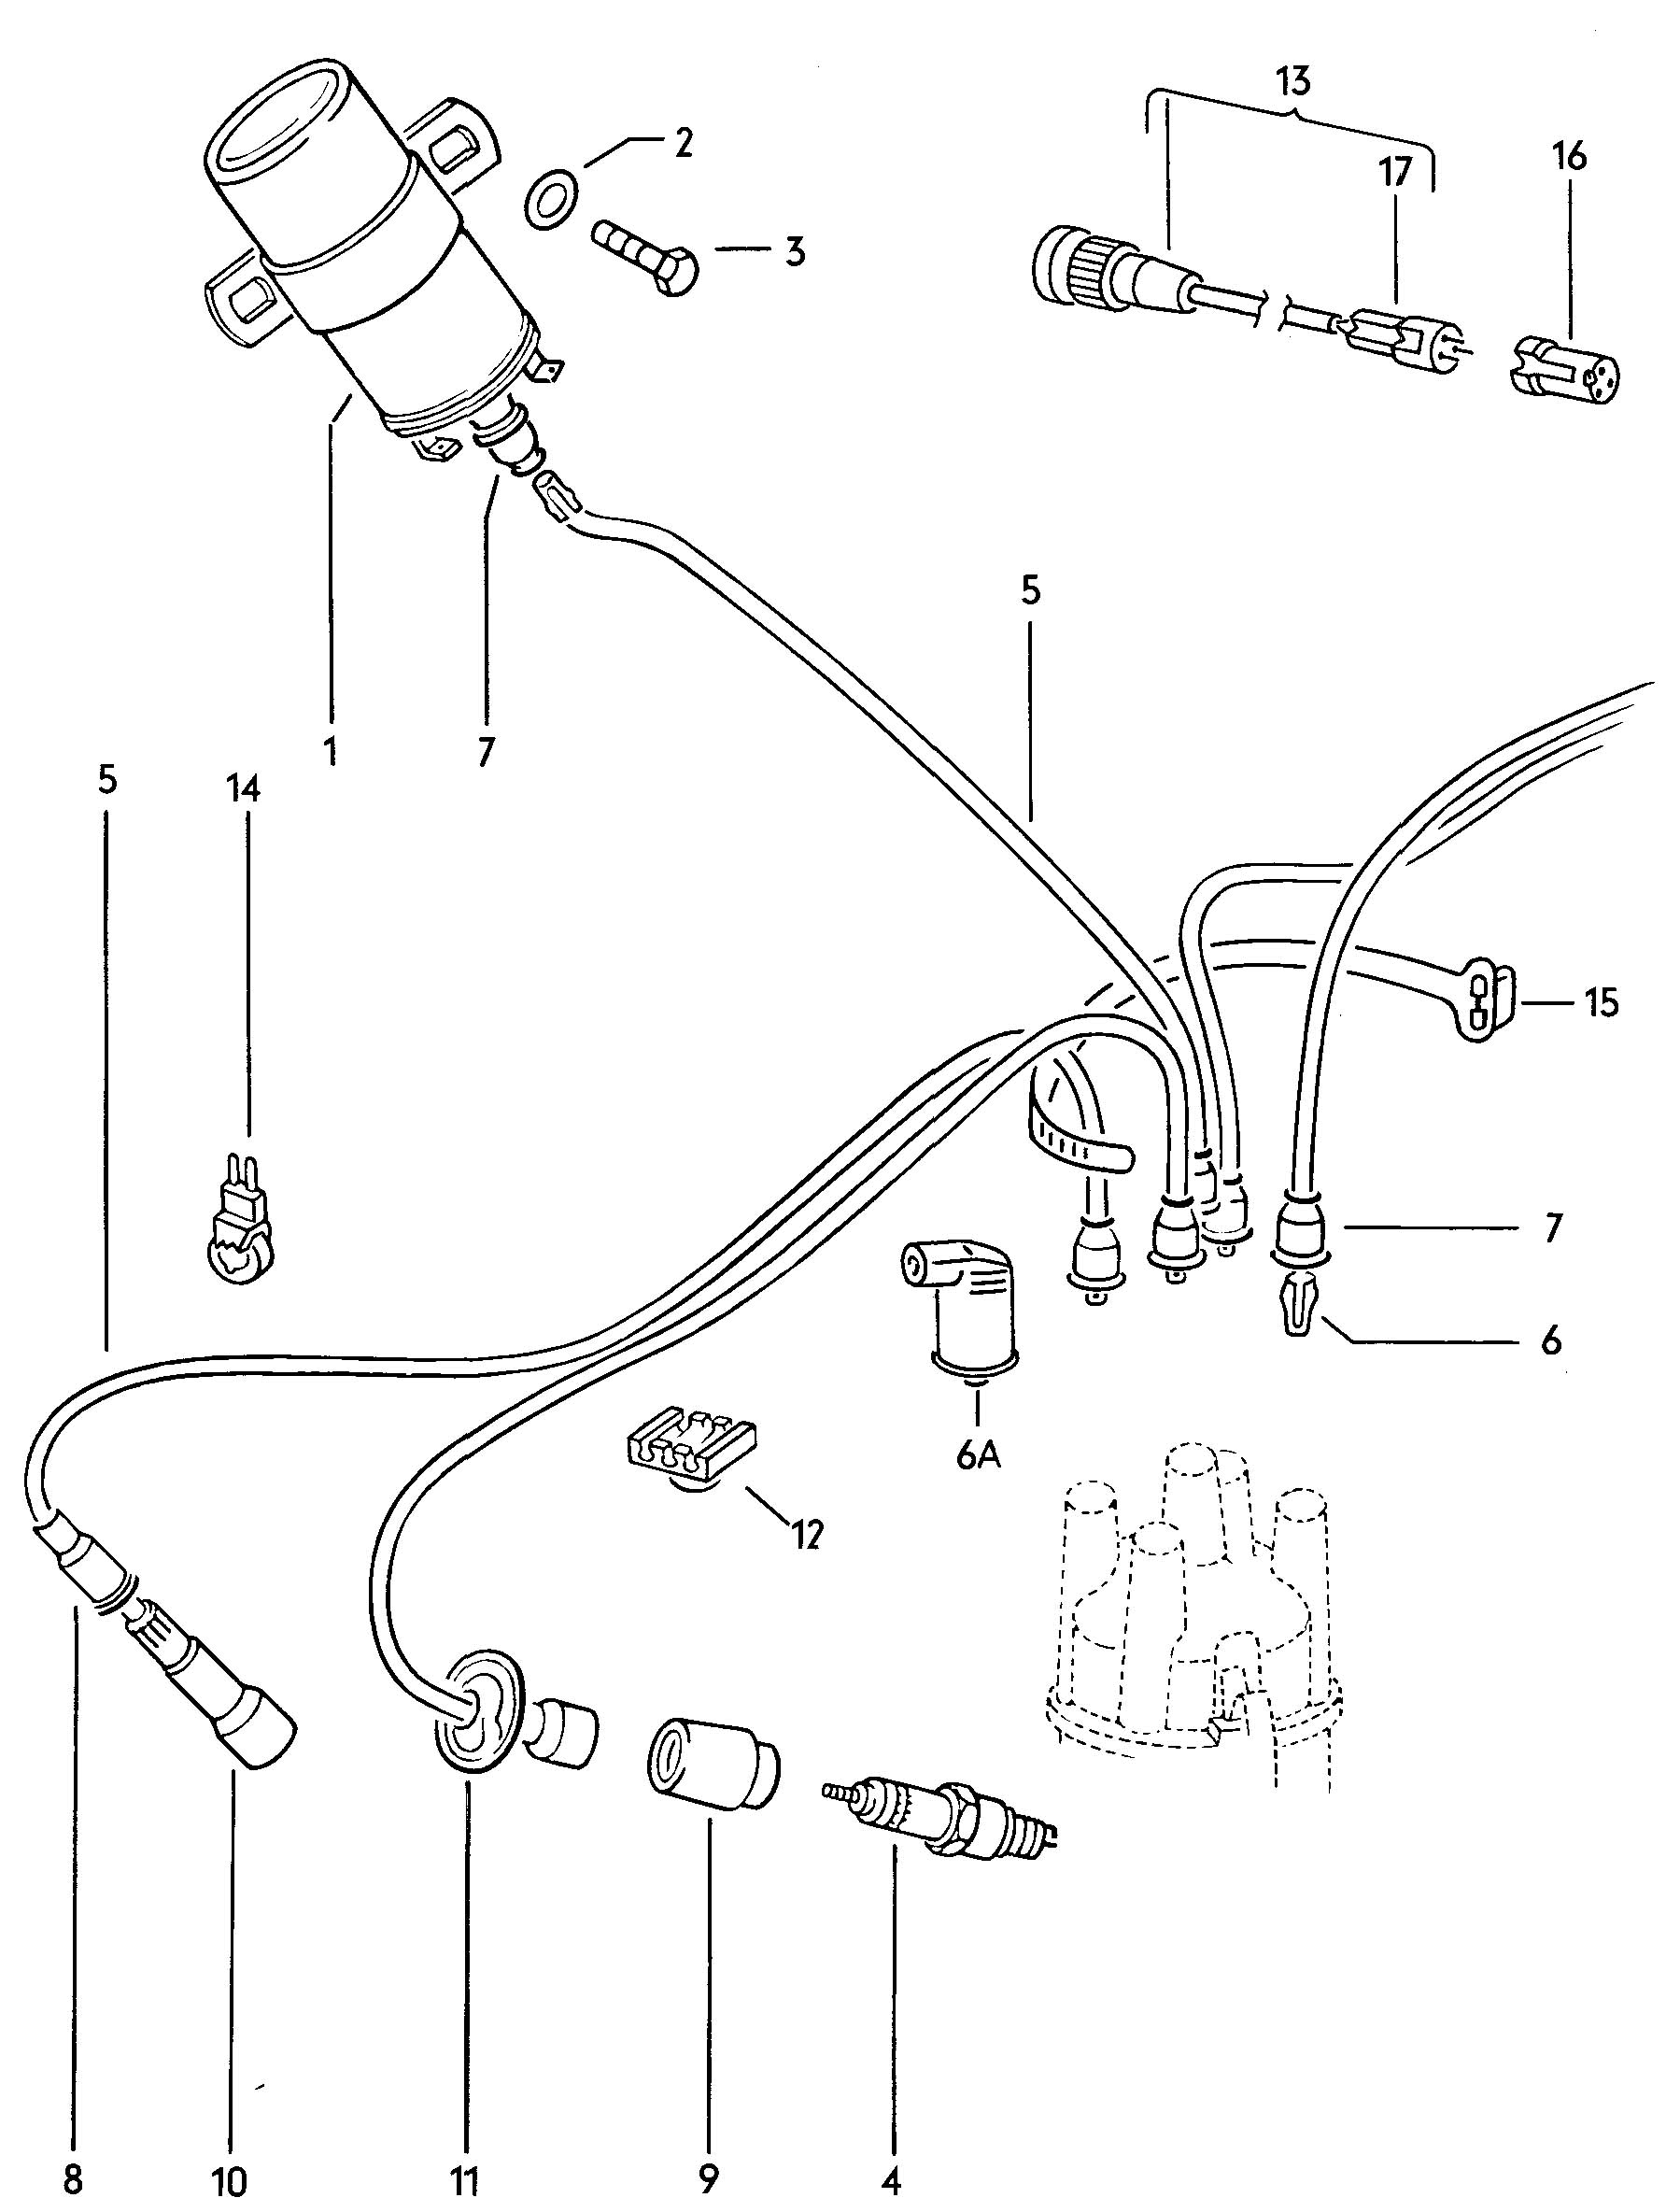 1969 volkswagen beetle coil wiring diagram fb 7080  vw bug coil wiring wiring diagram  fb 7080  vw bug coil wiring wiring diagram